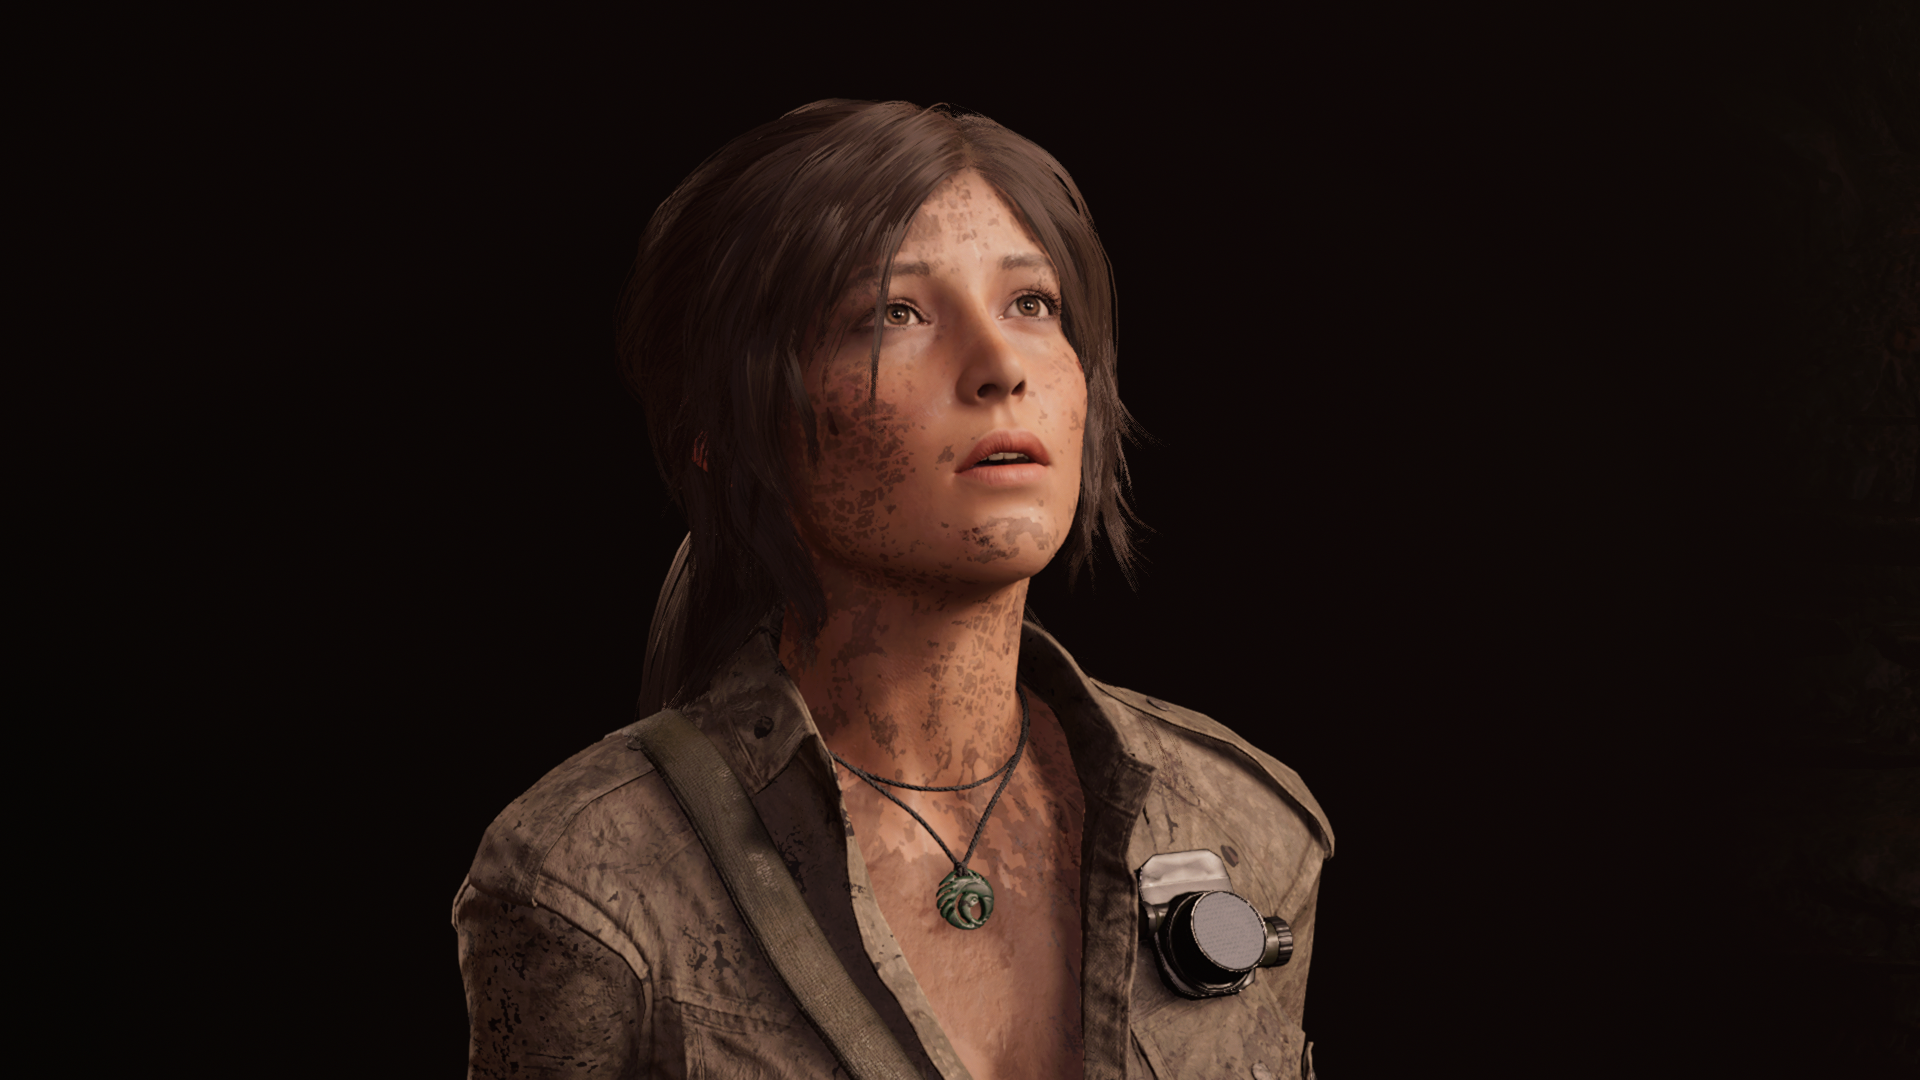 Shadow of the Tomb Raider Screenshot 2018.11.18 - 13.45.50.86.png - Shadow of the Tomb Raider